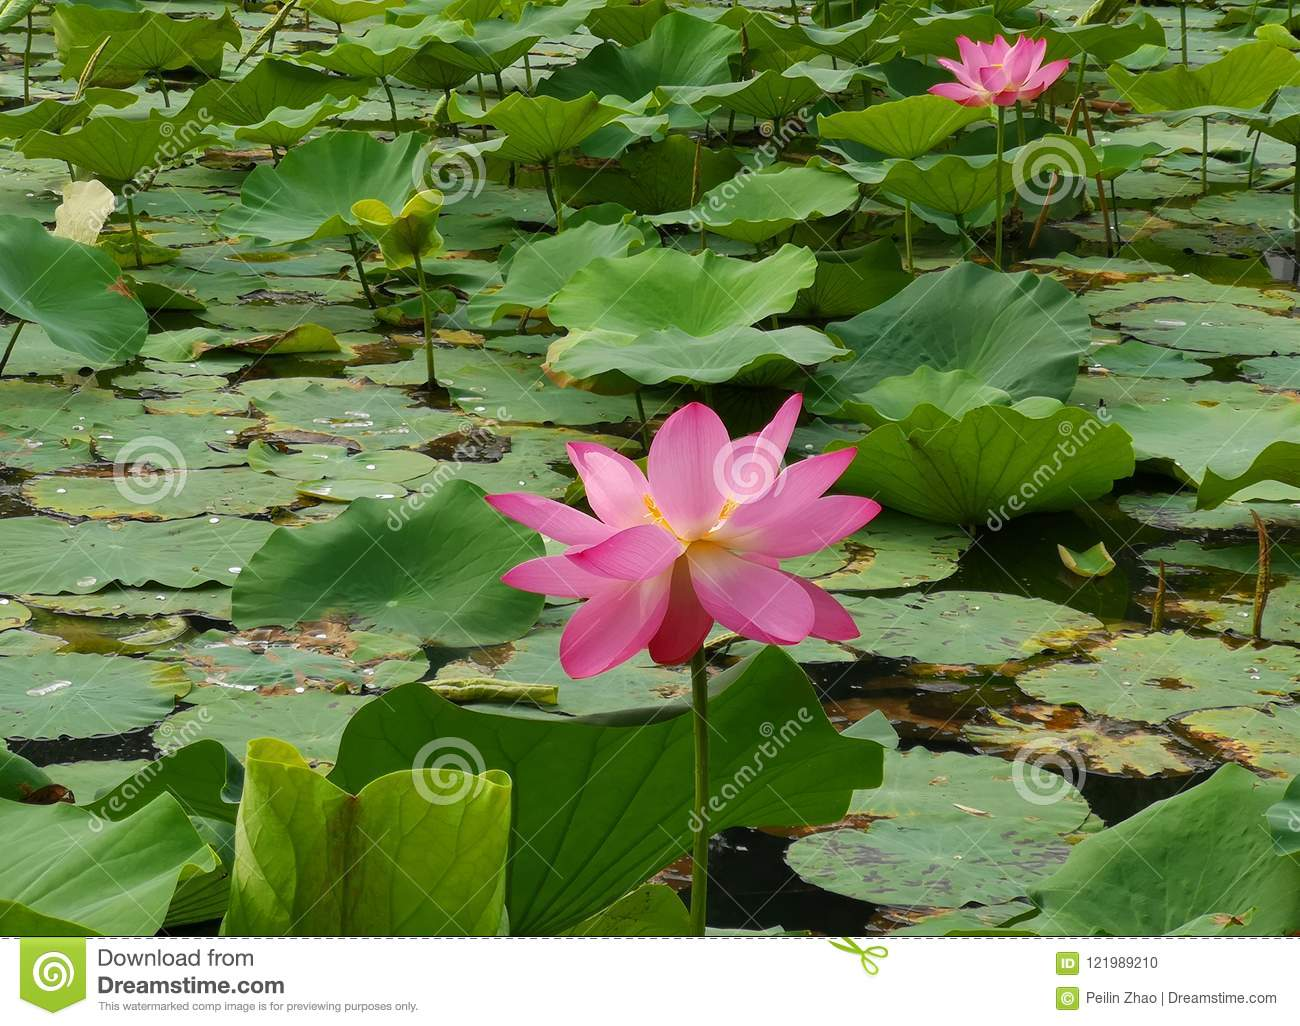 Two Lotus Flowers Are Electing On The Water Surface Stock Photo